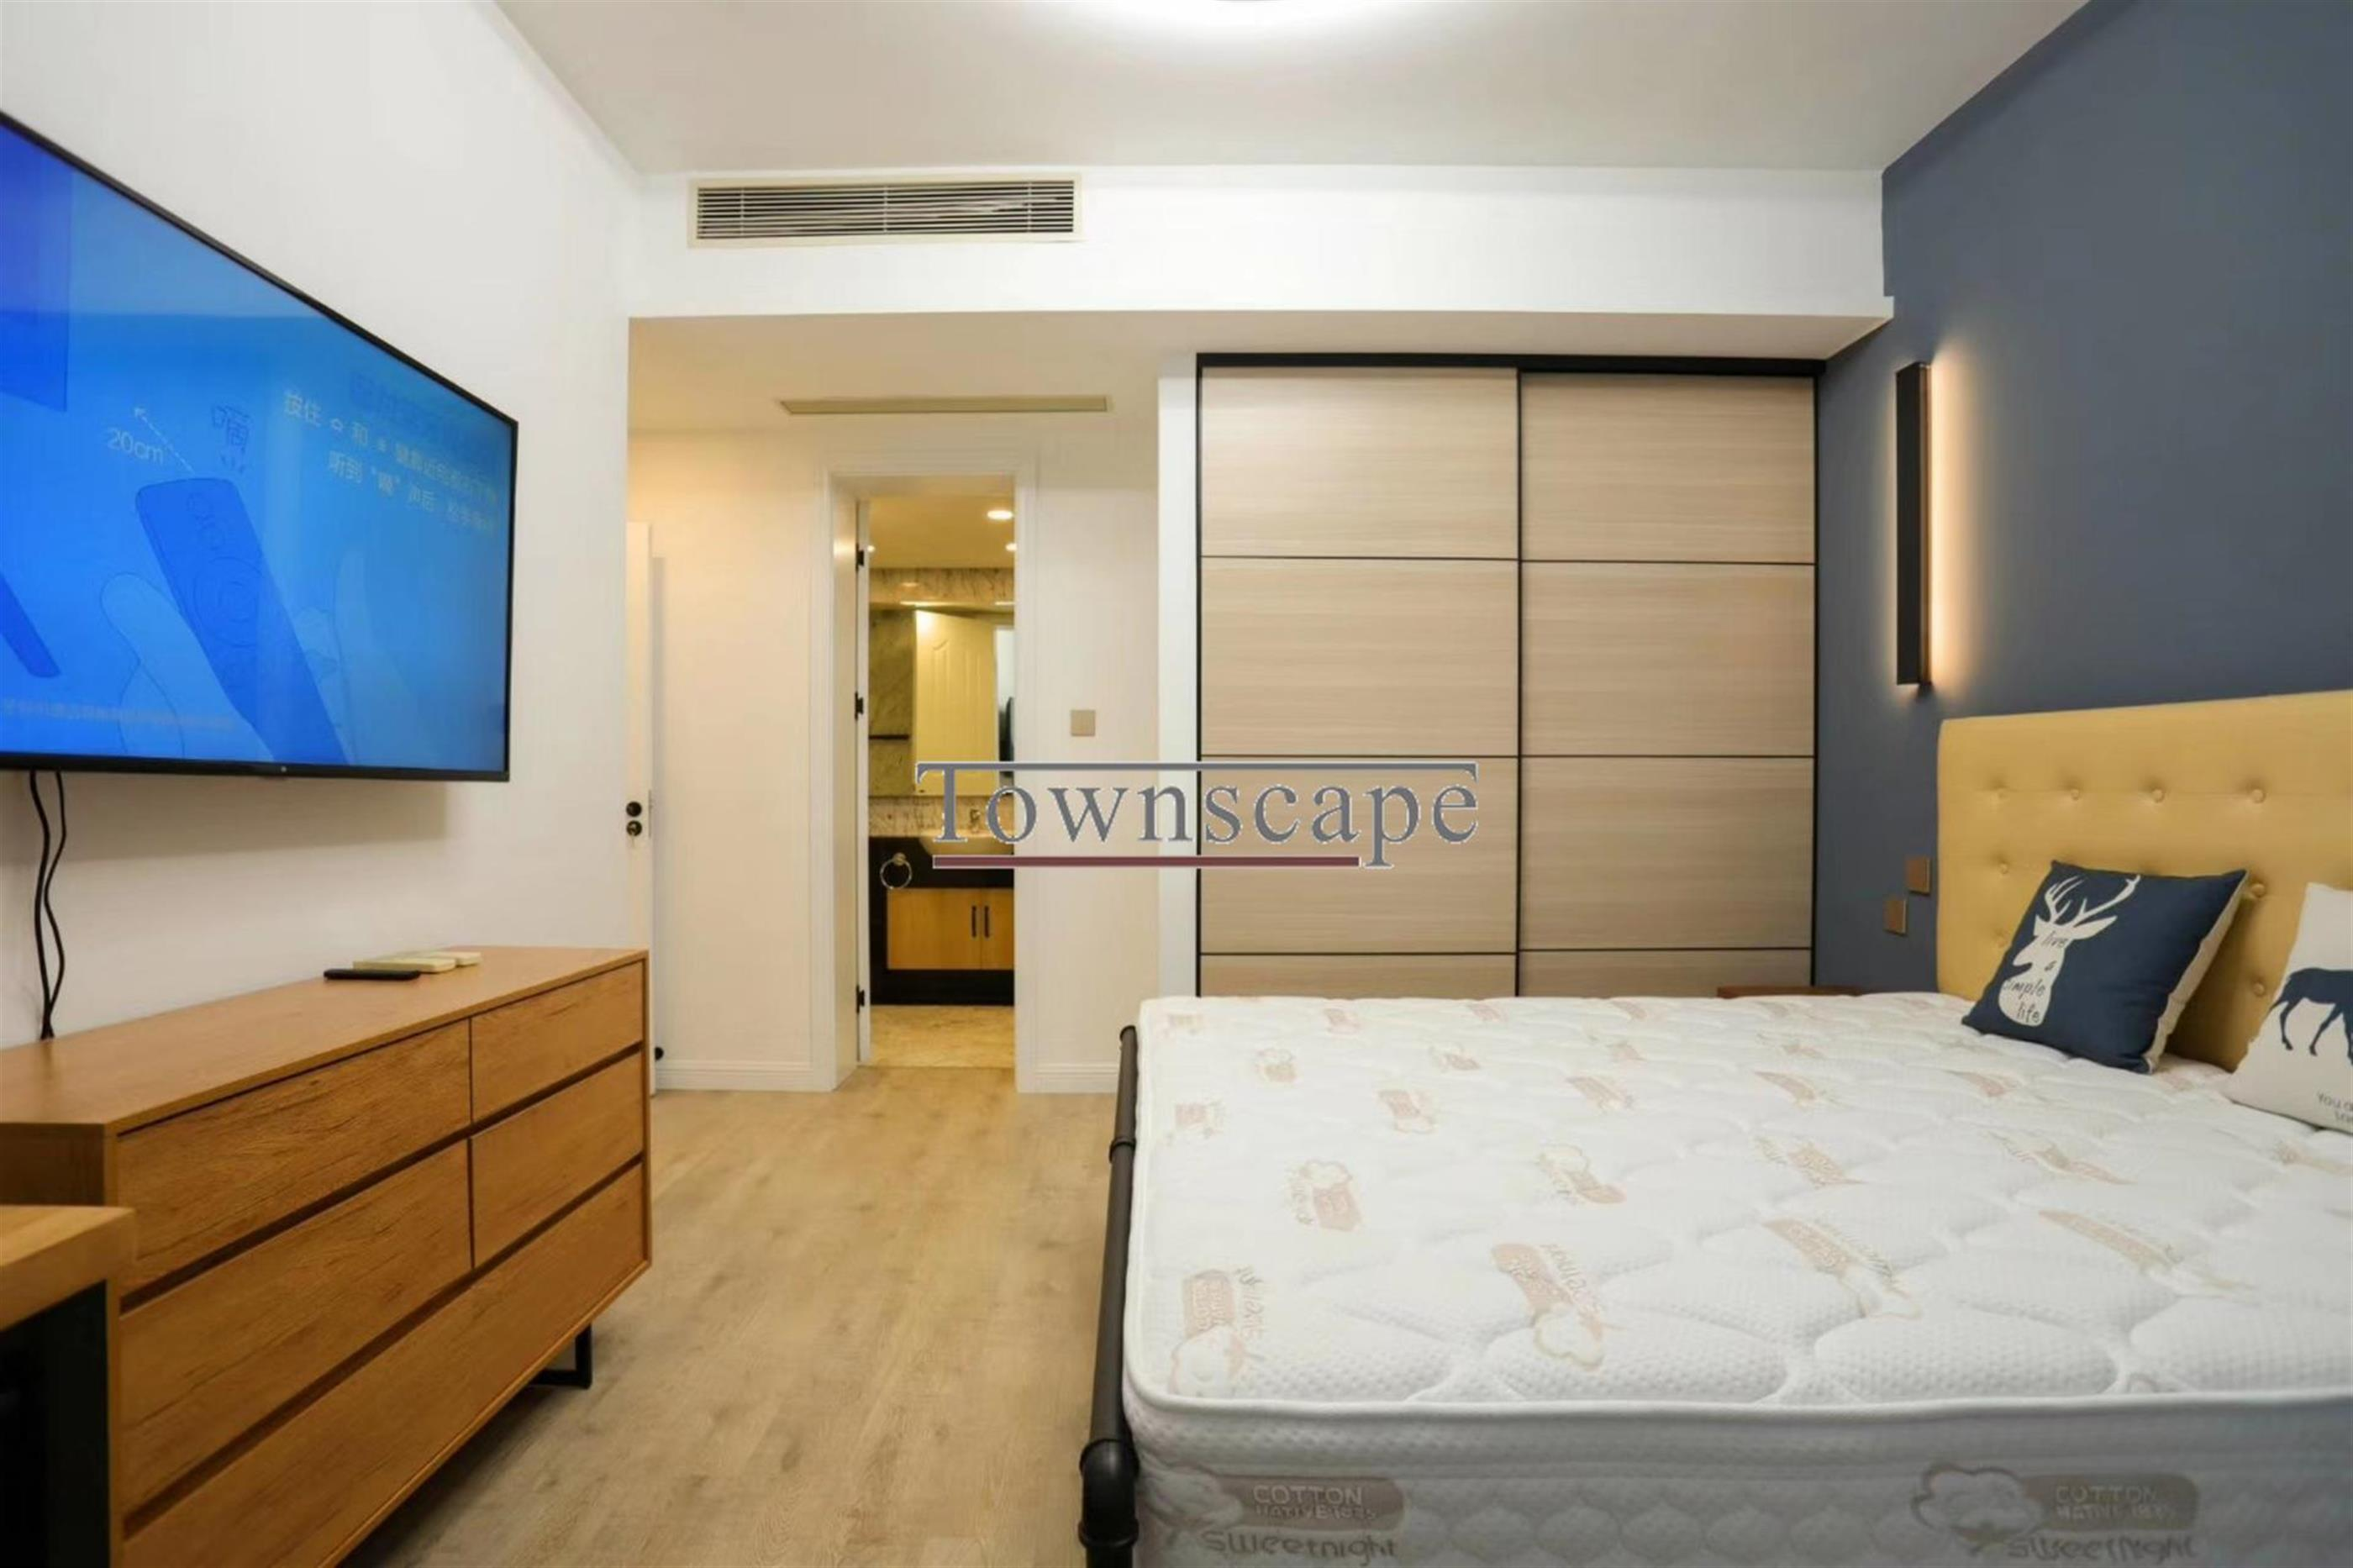 big bedroom Spacious Modern Apt nr LN 2/12/13 in Shanghai's W Nanjing Rd Area for Rent